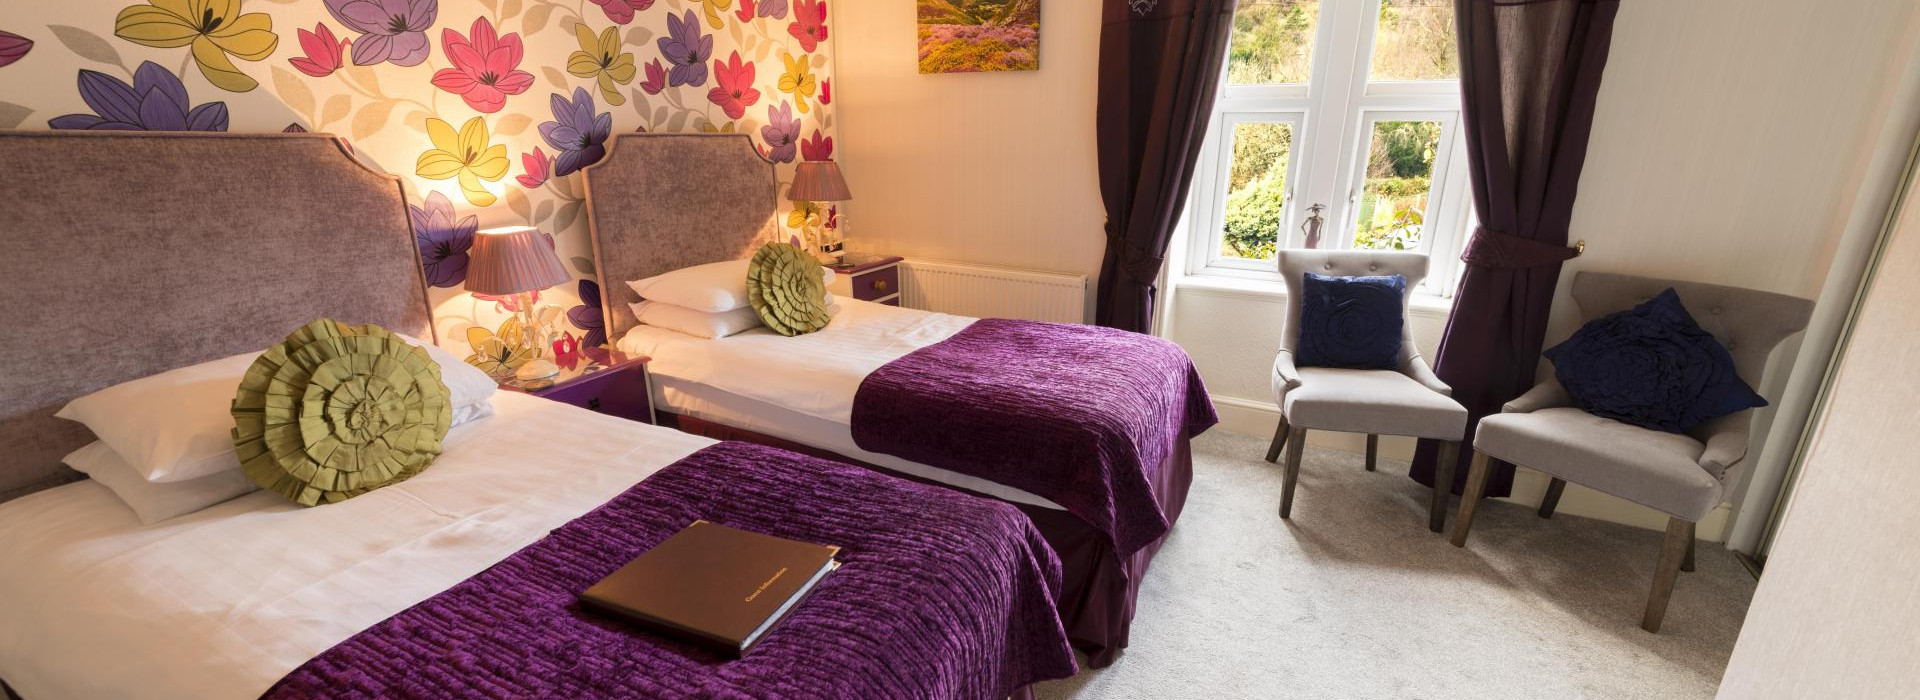 Snowdon Bedroom Furniture Betws Y Coed Bed And Breakfast Bb Accommodation In Snowdonia